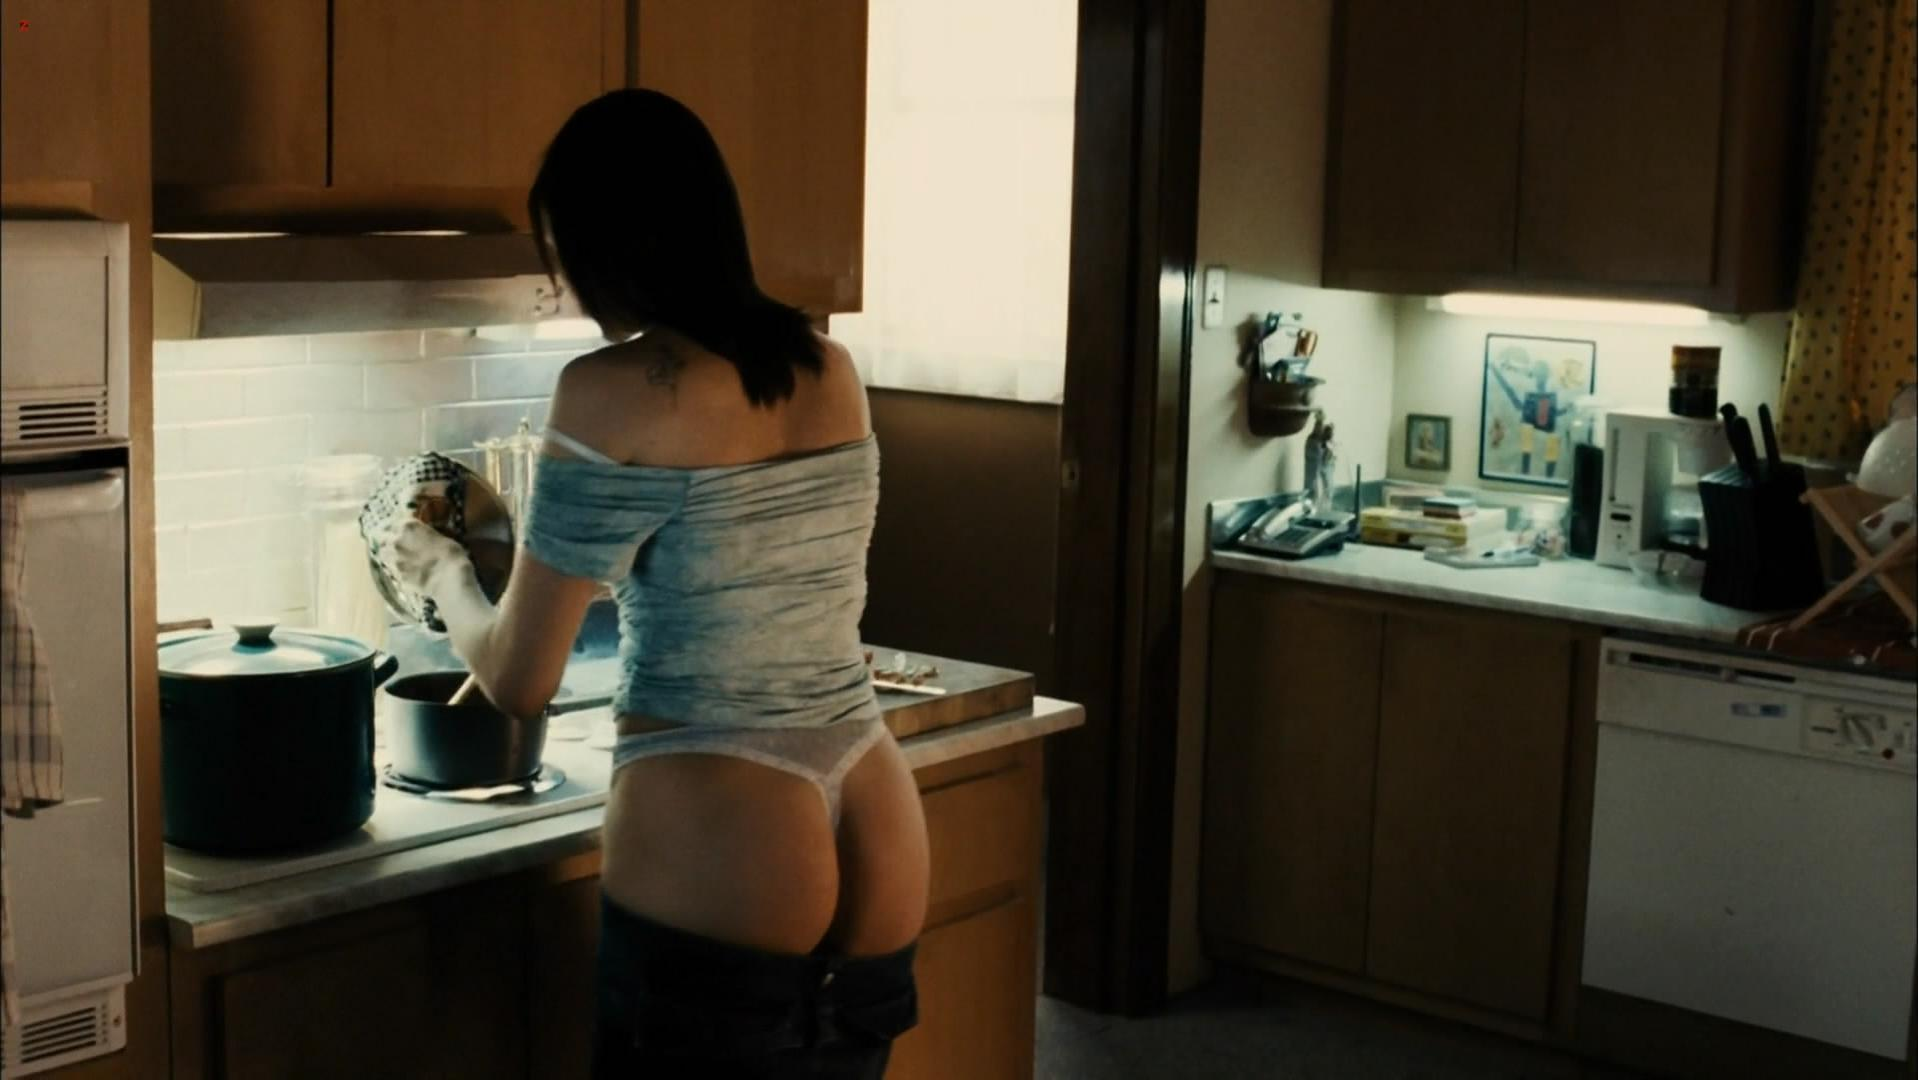 Running scared ass pic movie stills, pussy porn games